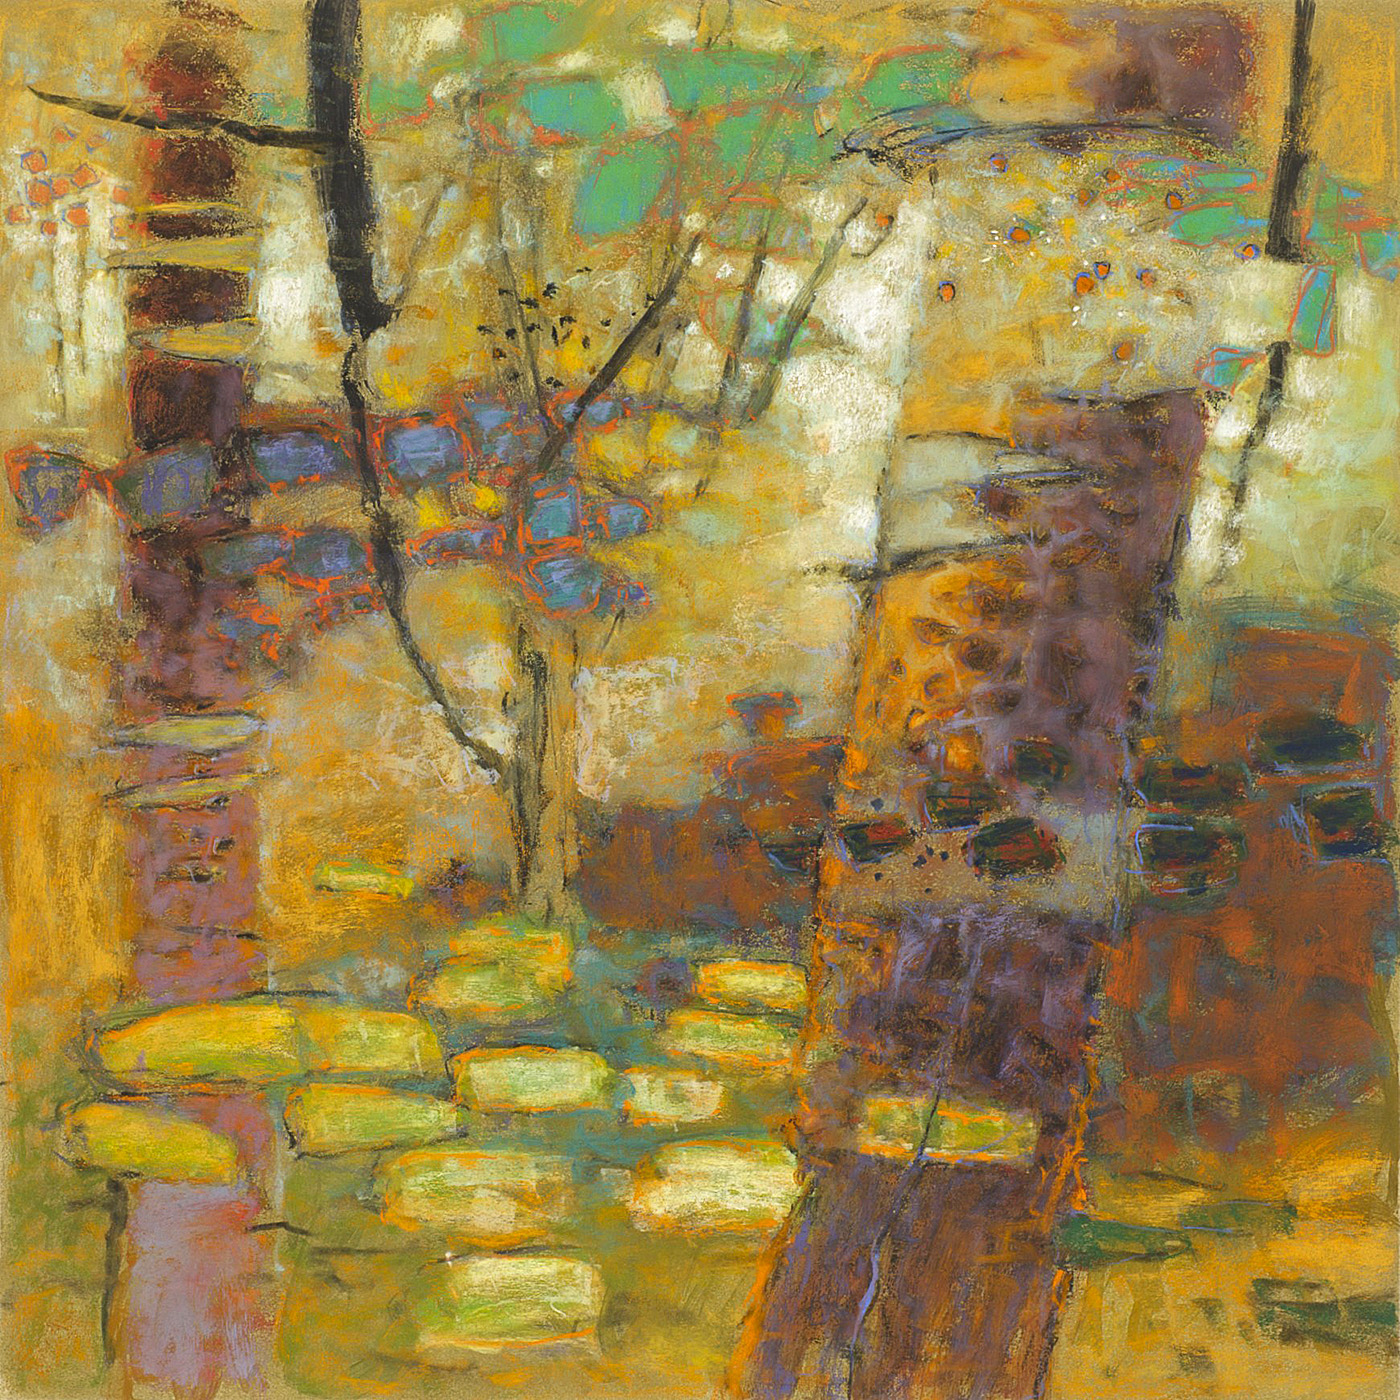 Light Matter   | pastel on paper | 24 x 24"